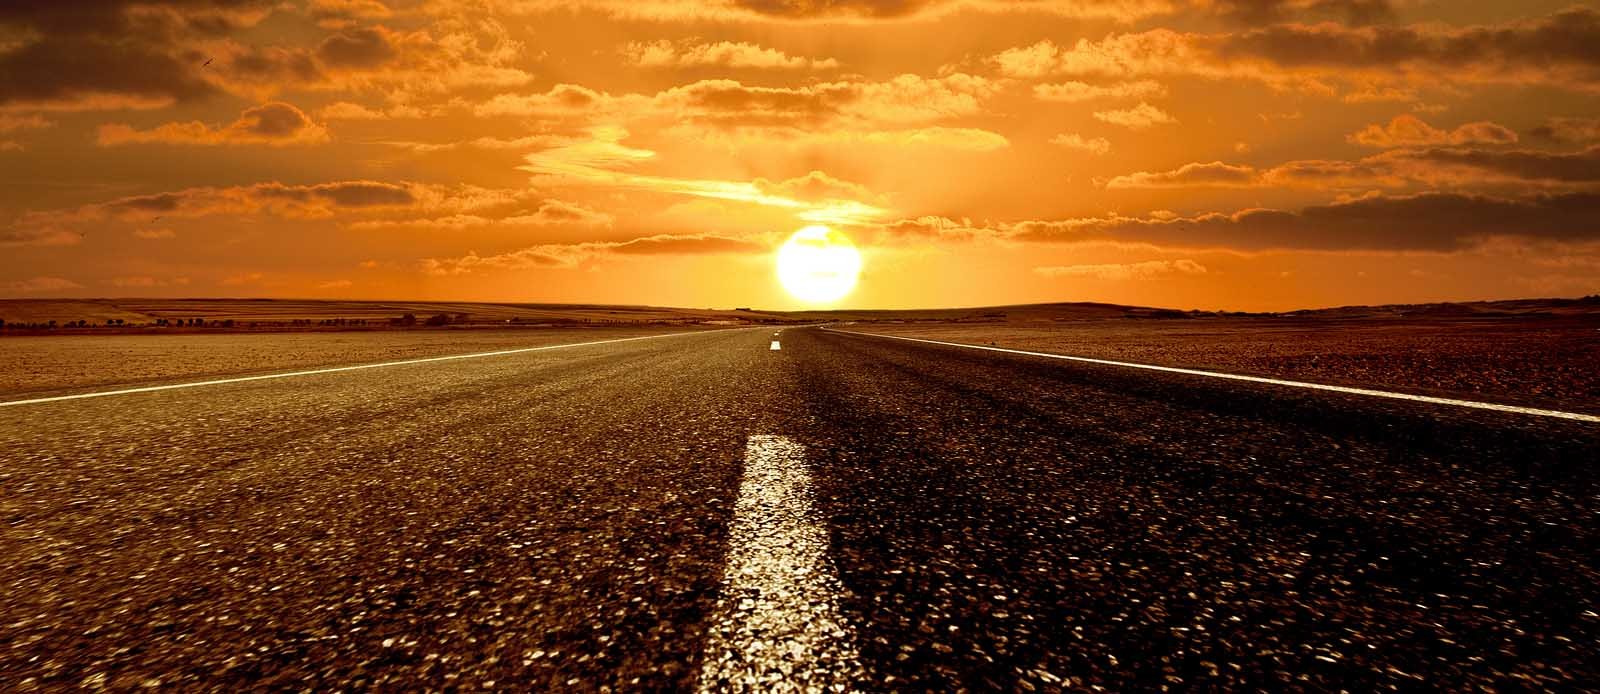 New Road ahead and the sunset 18865685